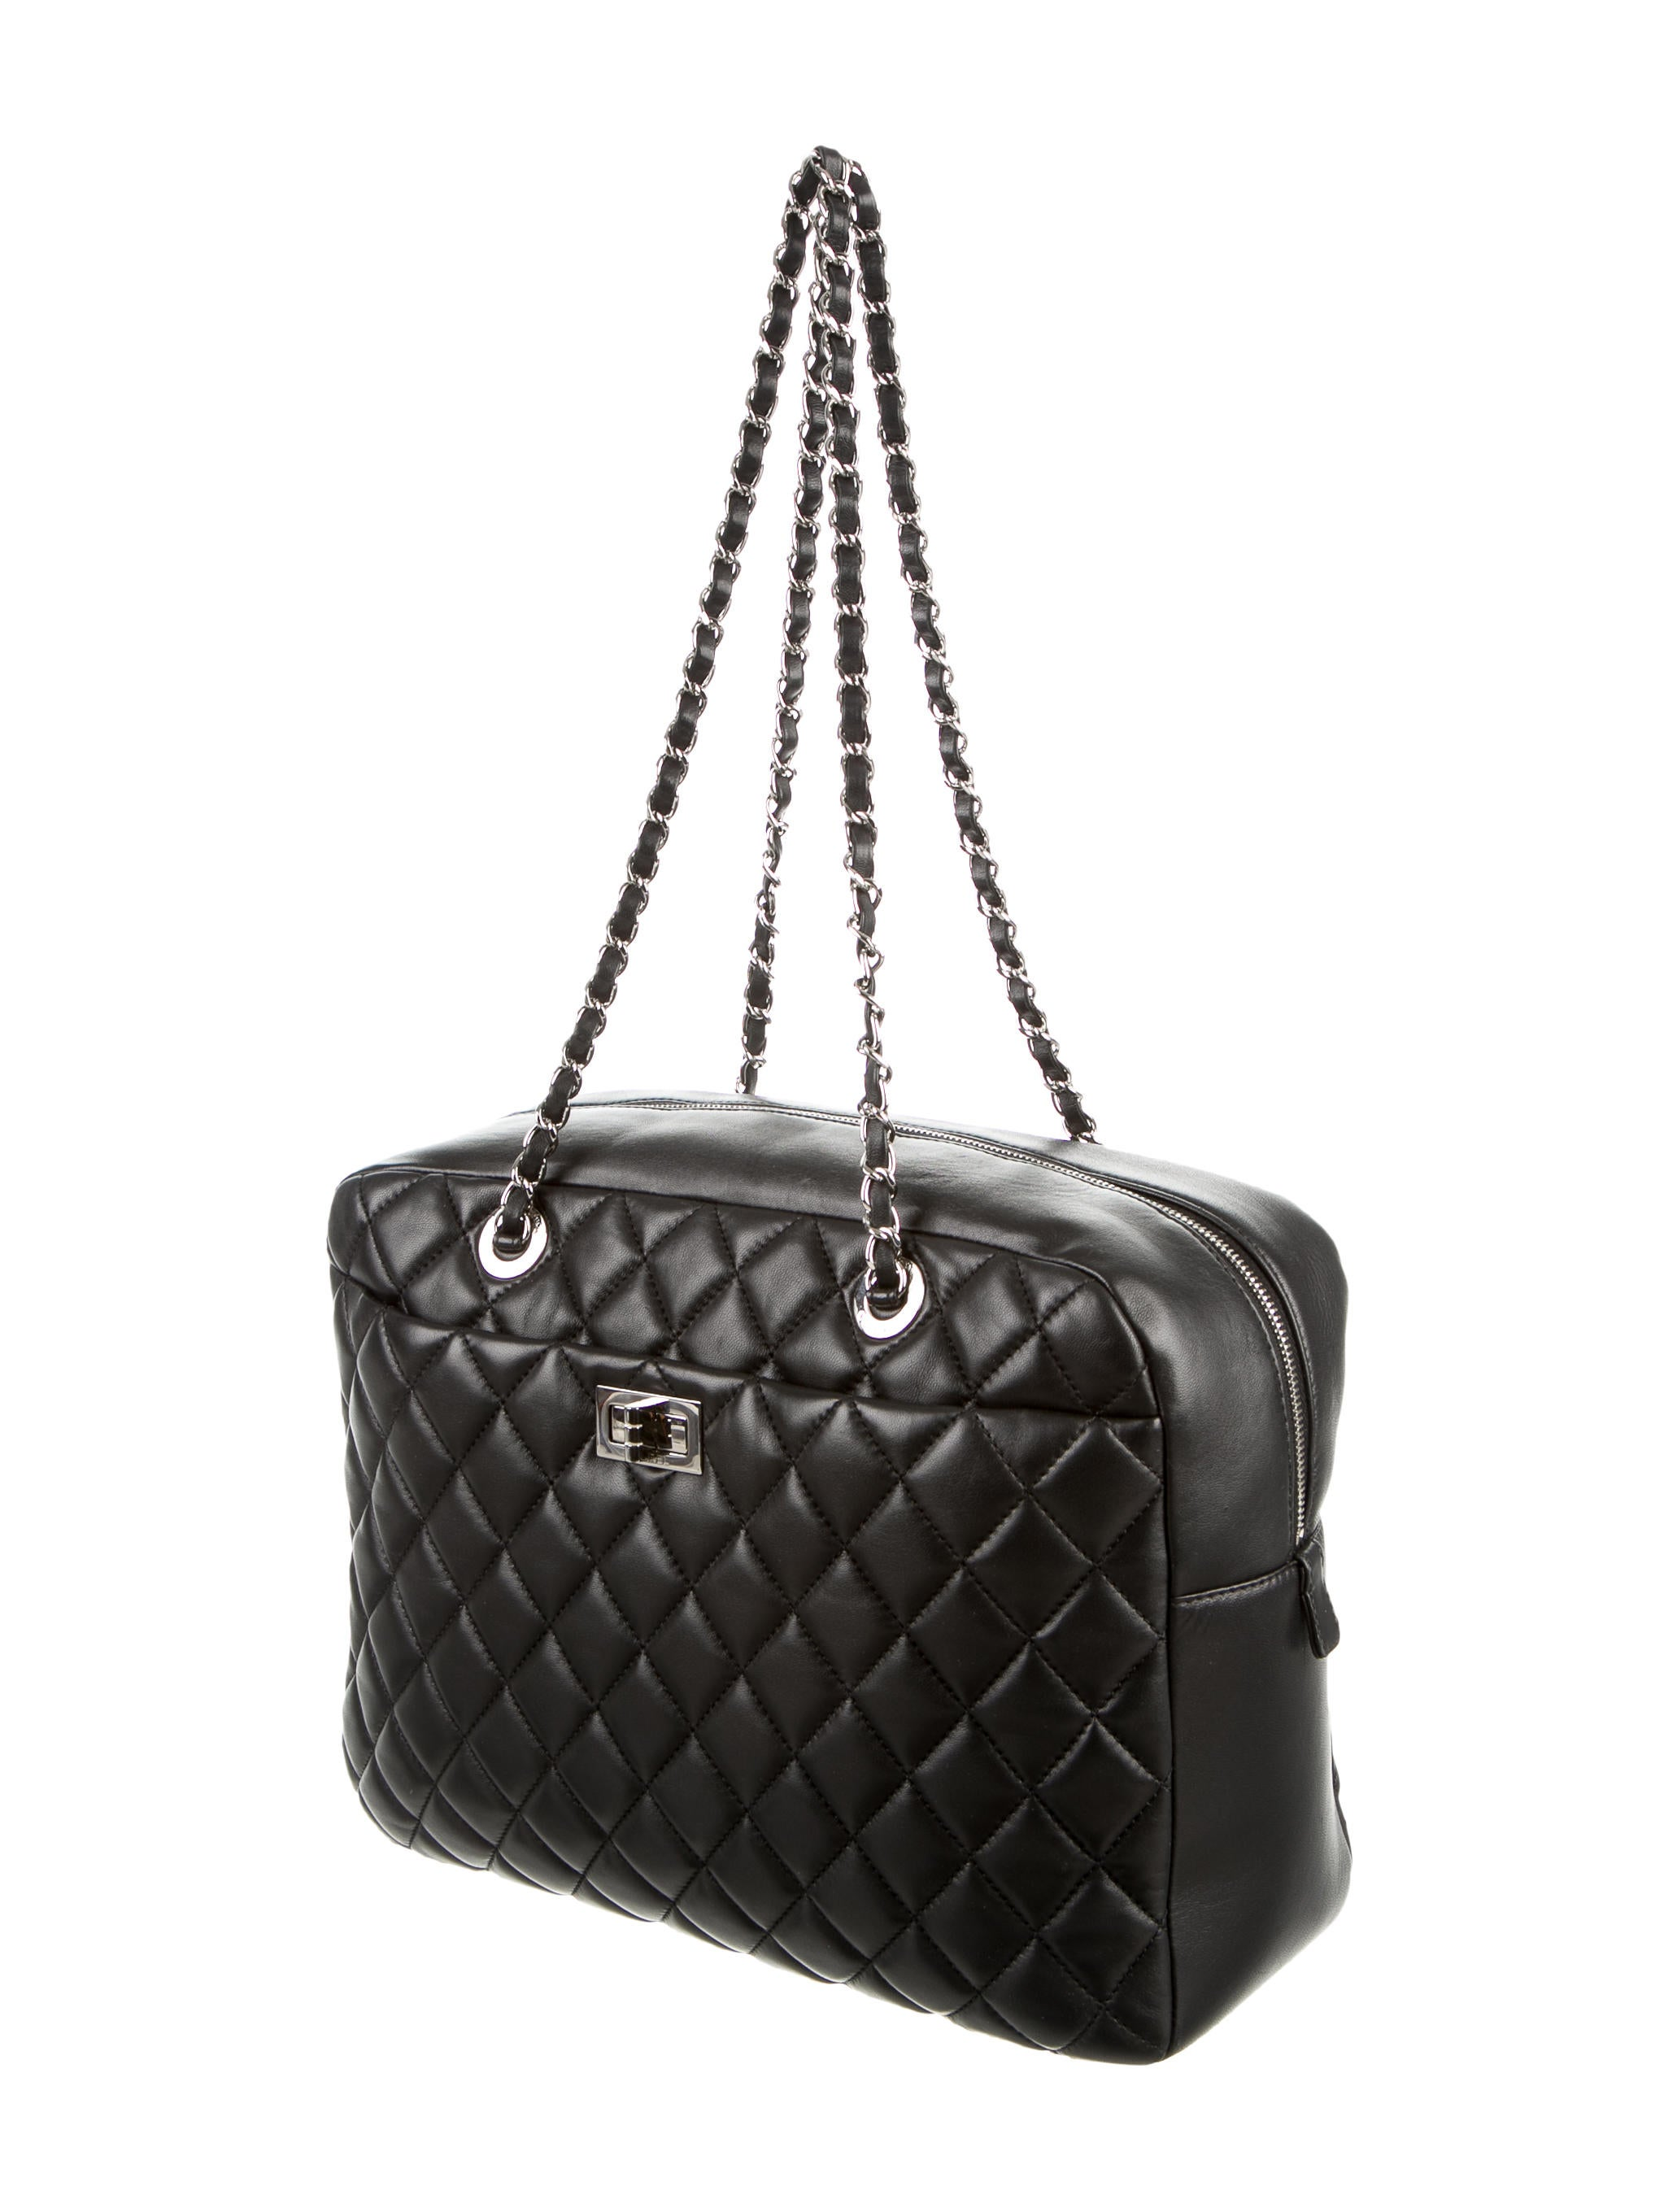 Chanel Large Reissue Camera Bag Handbags Cha128830